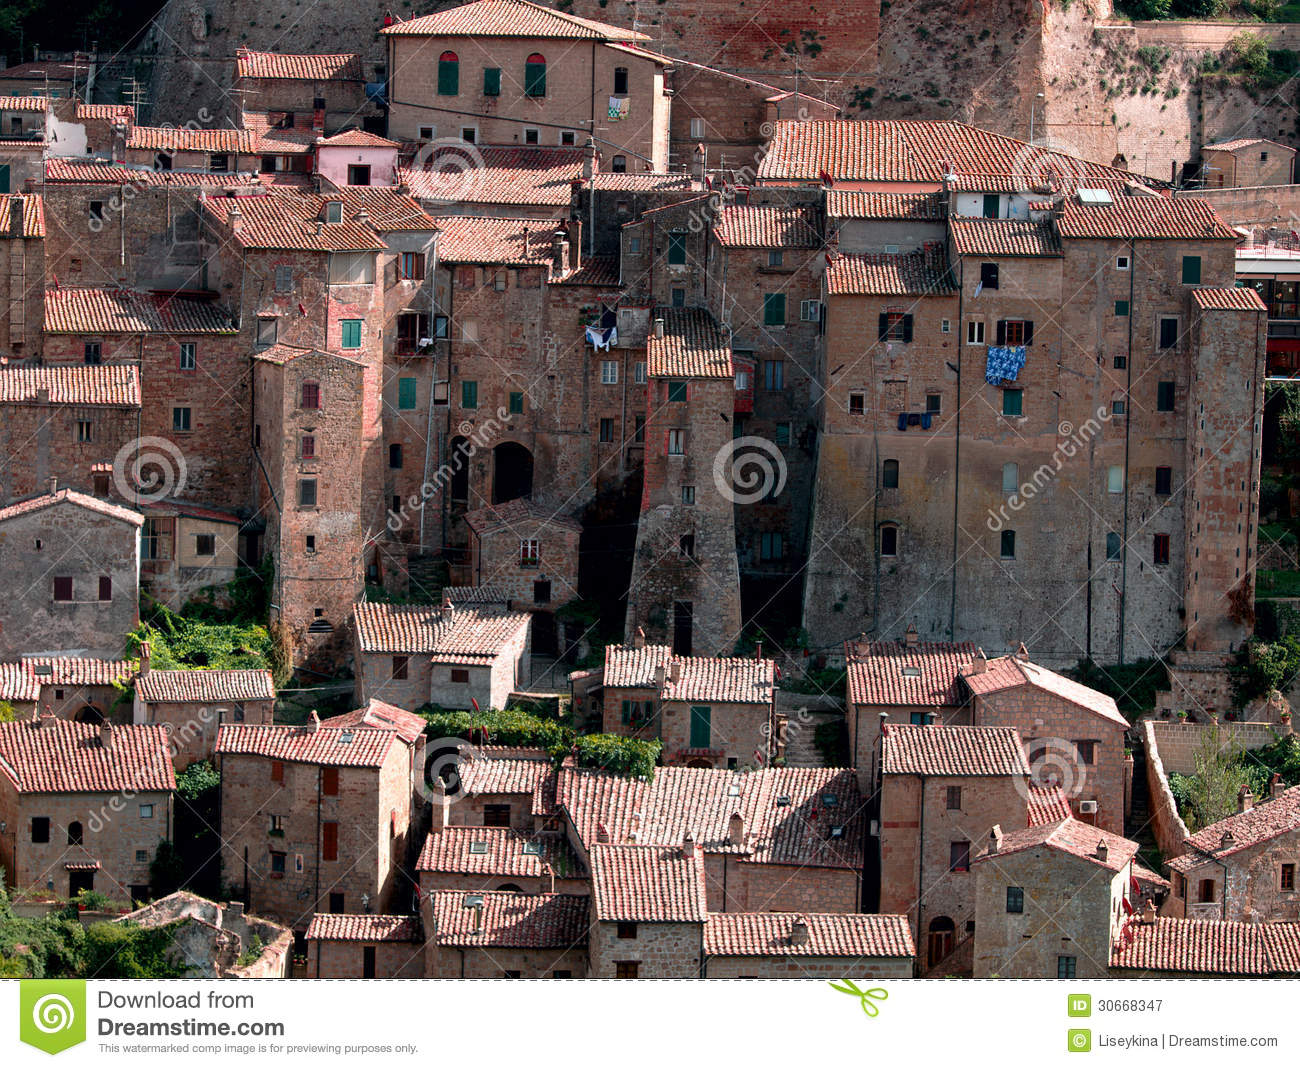 Sorano Italy  city photos gallery : Sorano Town In Italy. Royalty Free Stock Photography Image: 30668347